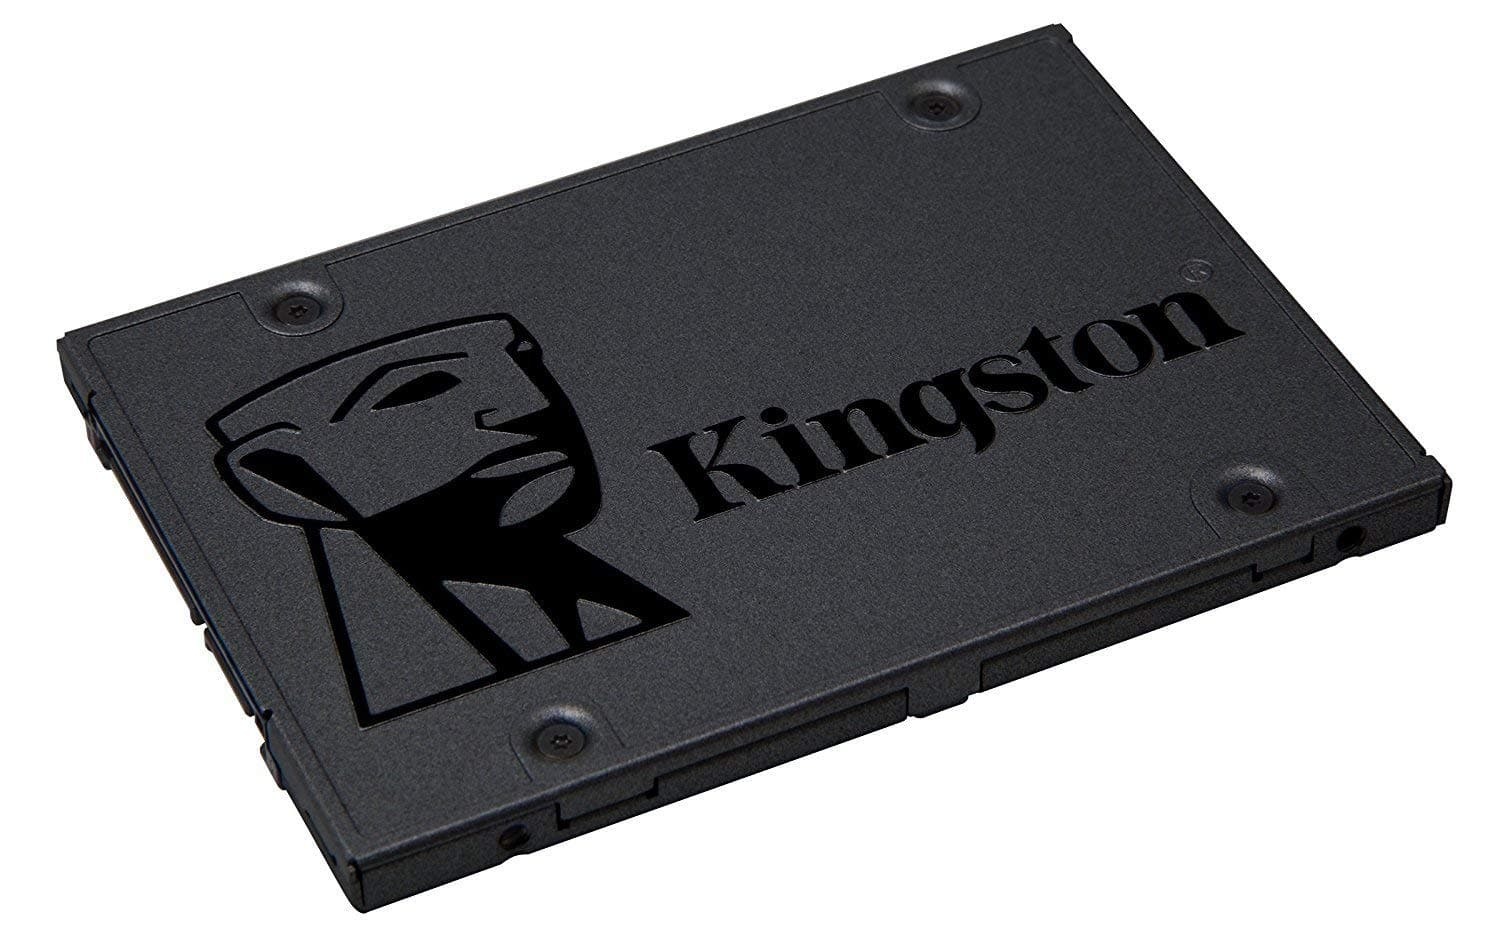 Kingston 240GB SSD $24 with first time amazon prime now